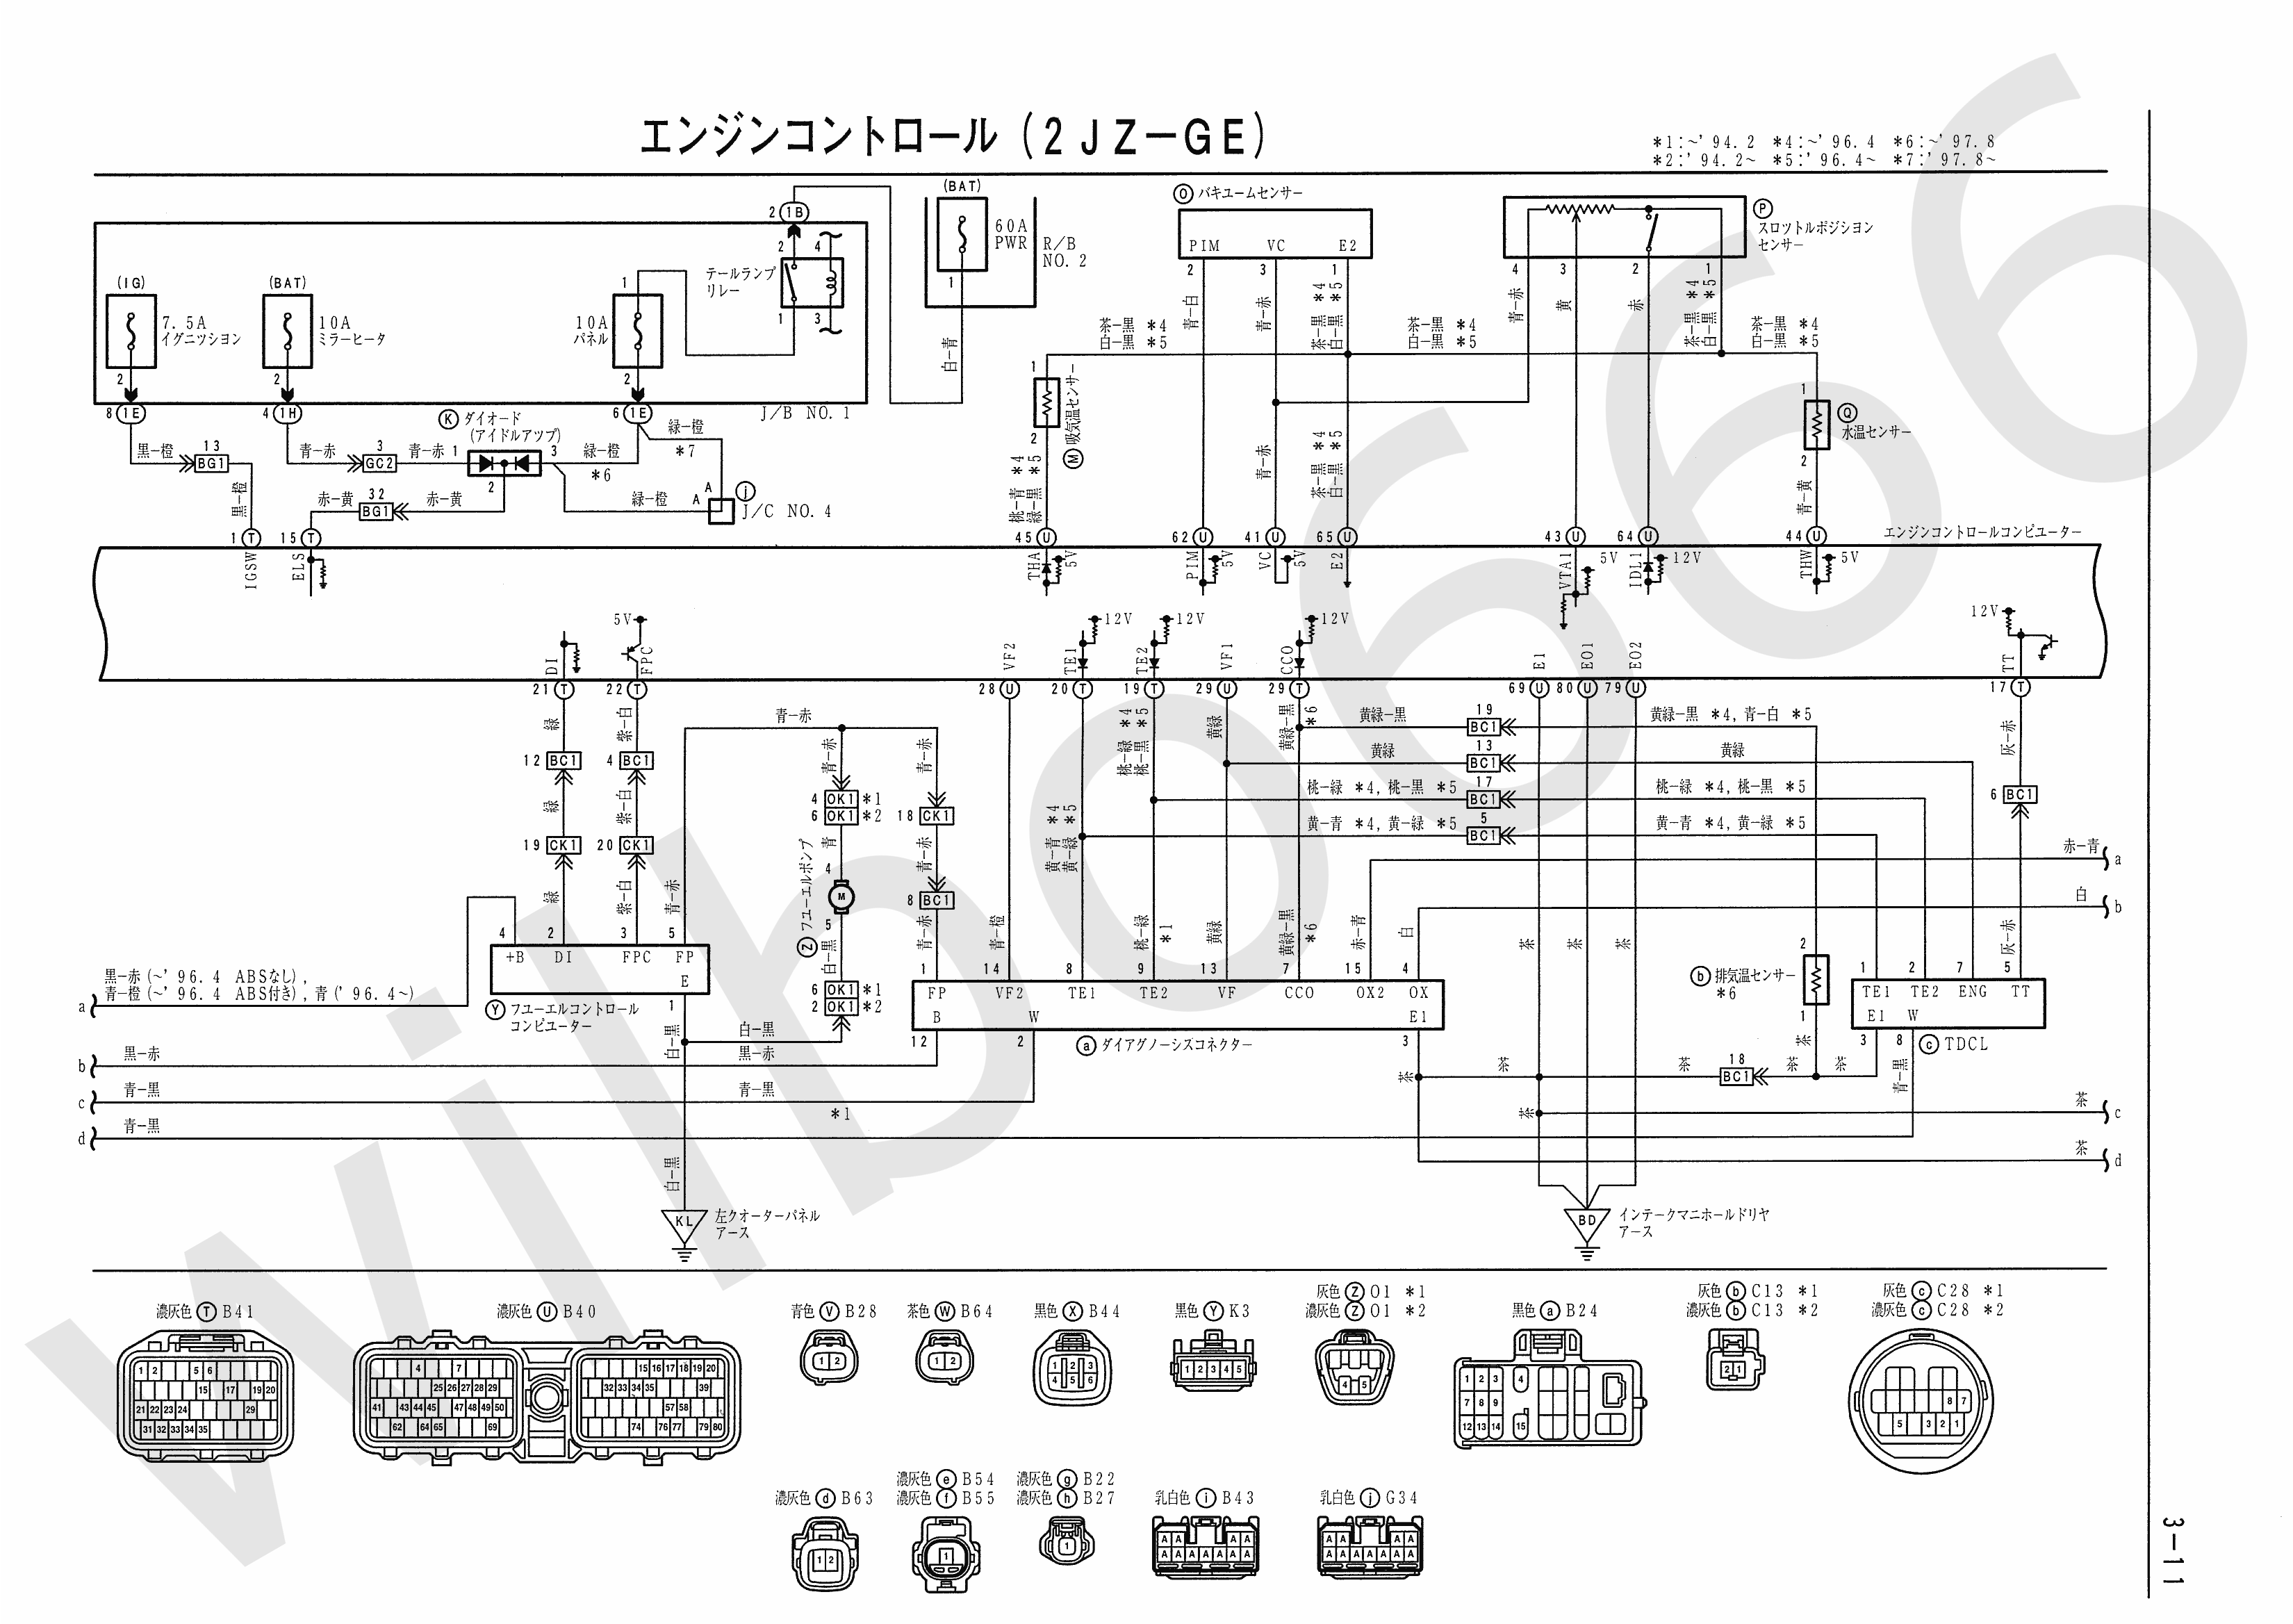 JZA80 Electrical Wiring Diagram 6742505 3 11?ssl=1 toyota ipsum wiring diagram toyota wiring diagrams instruction toyota wiring diagrams online at cos-gaming.co